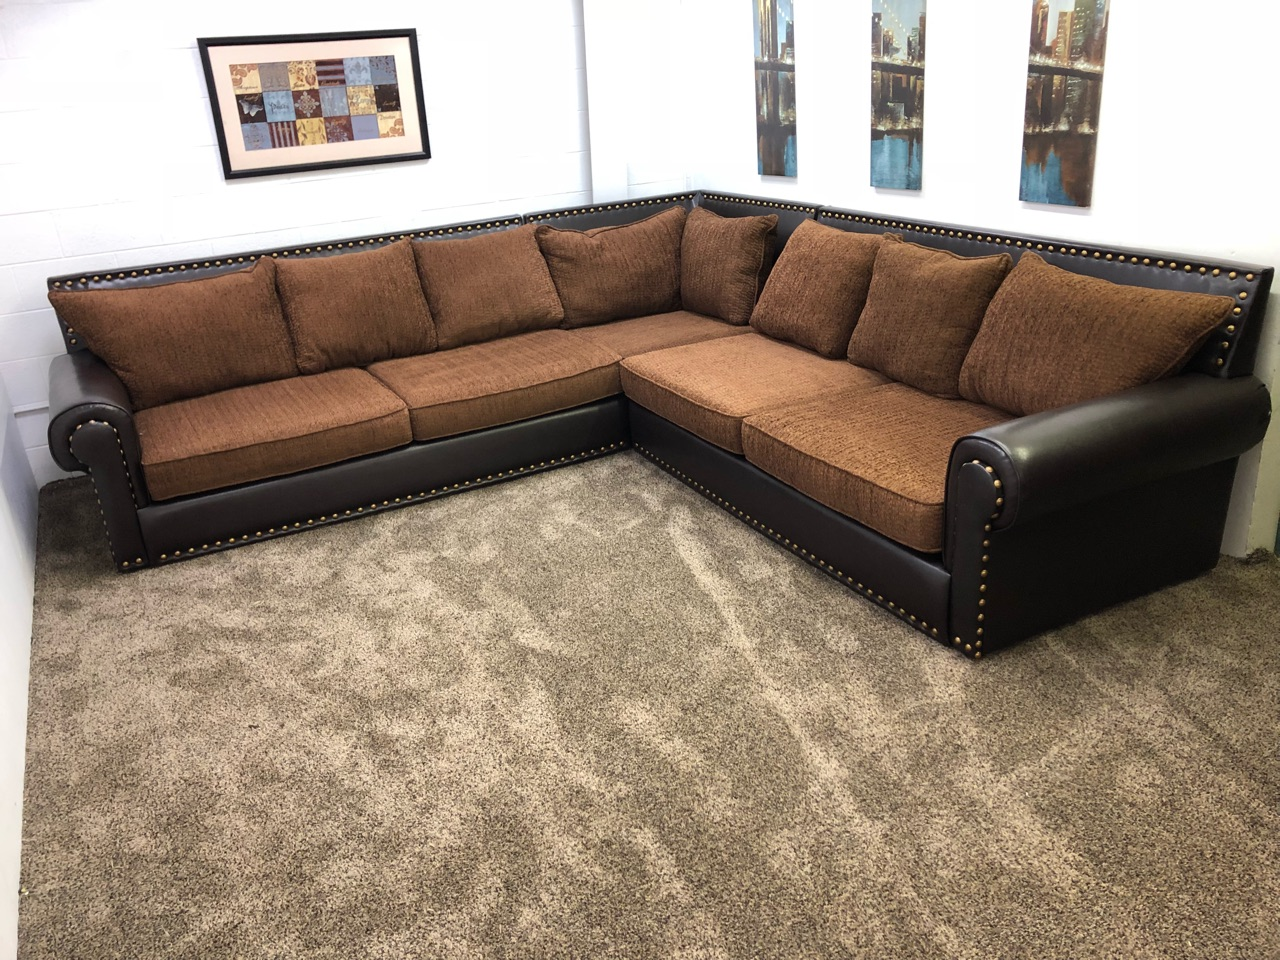 Delightful #1285  Large 3 Piece Brown Chenille PU Leather Sectional Sofa.